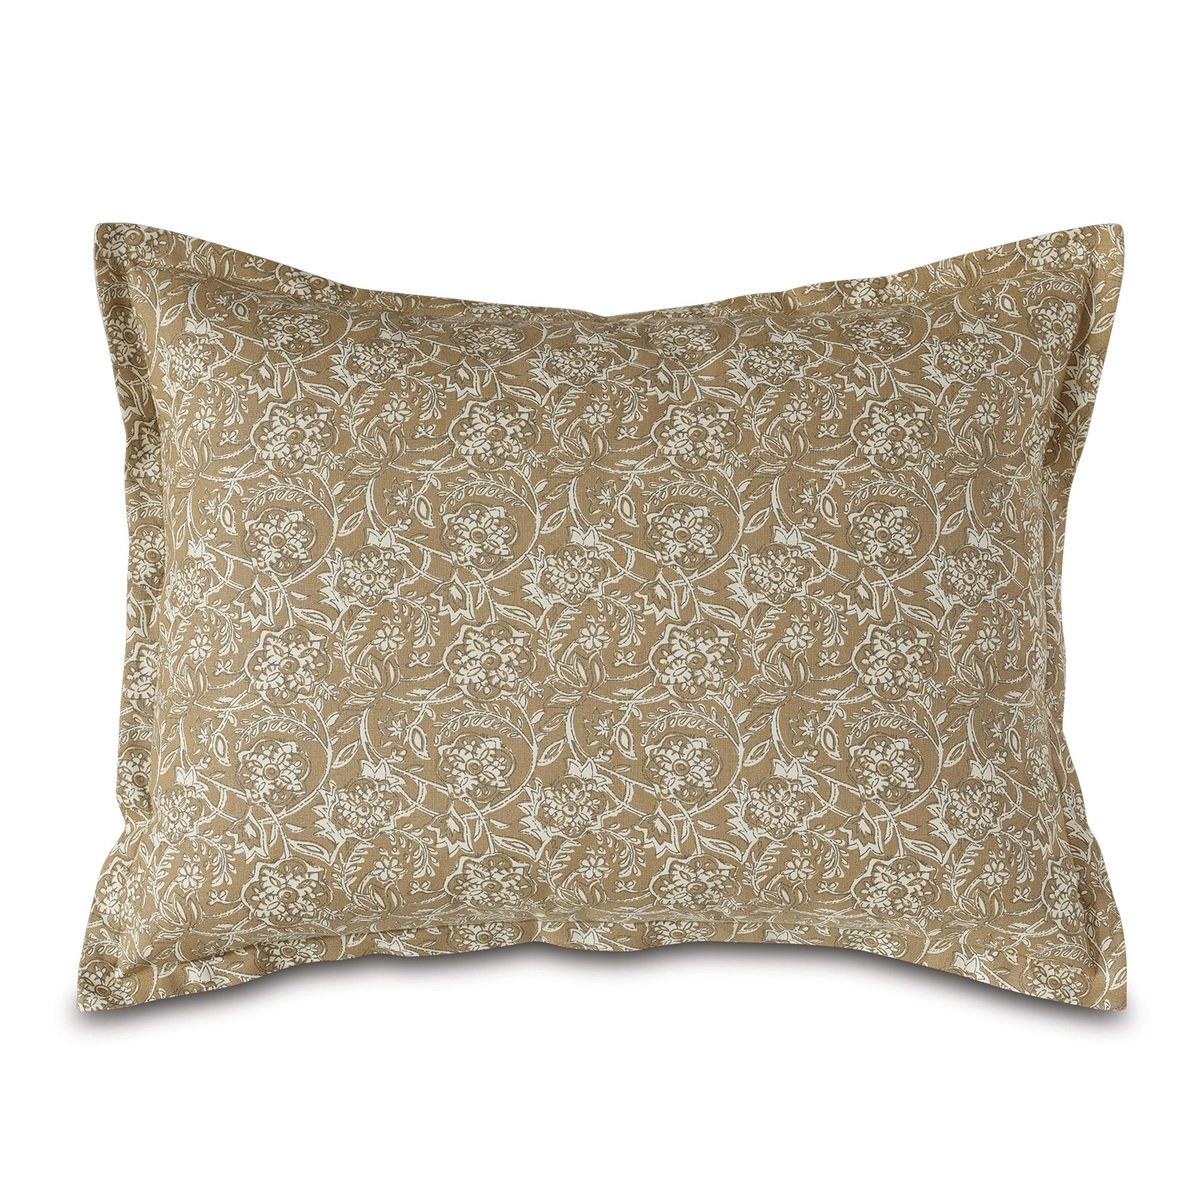 Alexa hampton eastern accent bedding taj  stn 04 1200 xxx q85